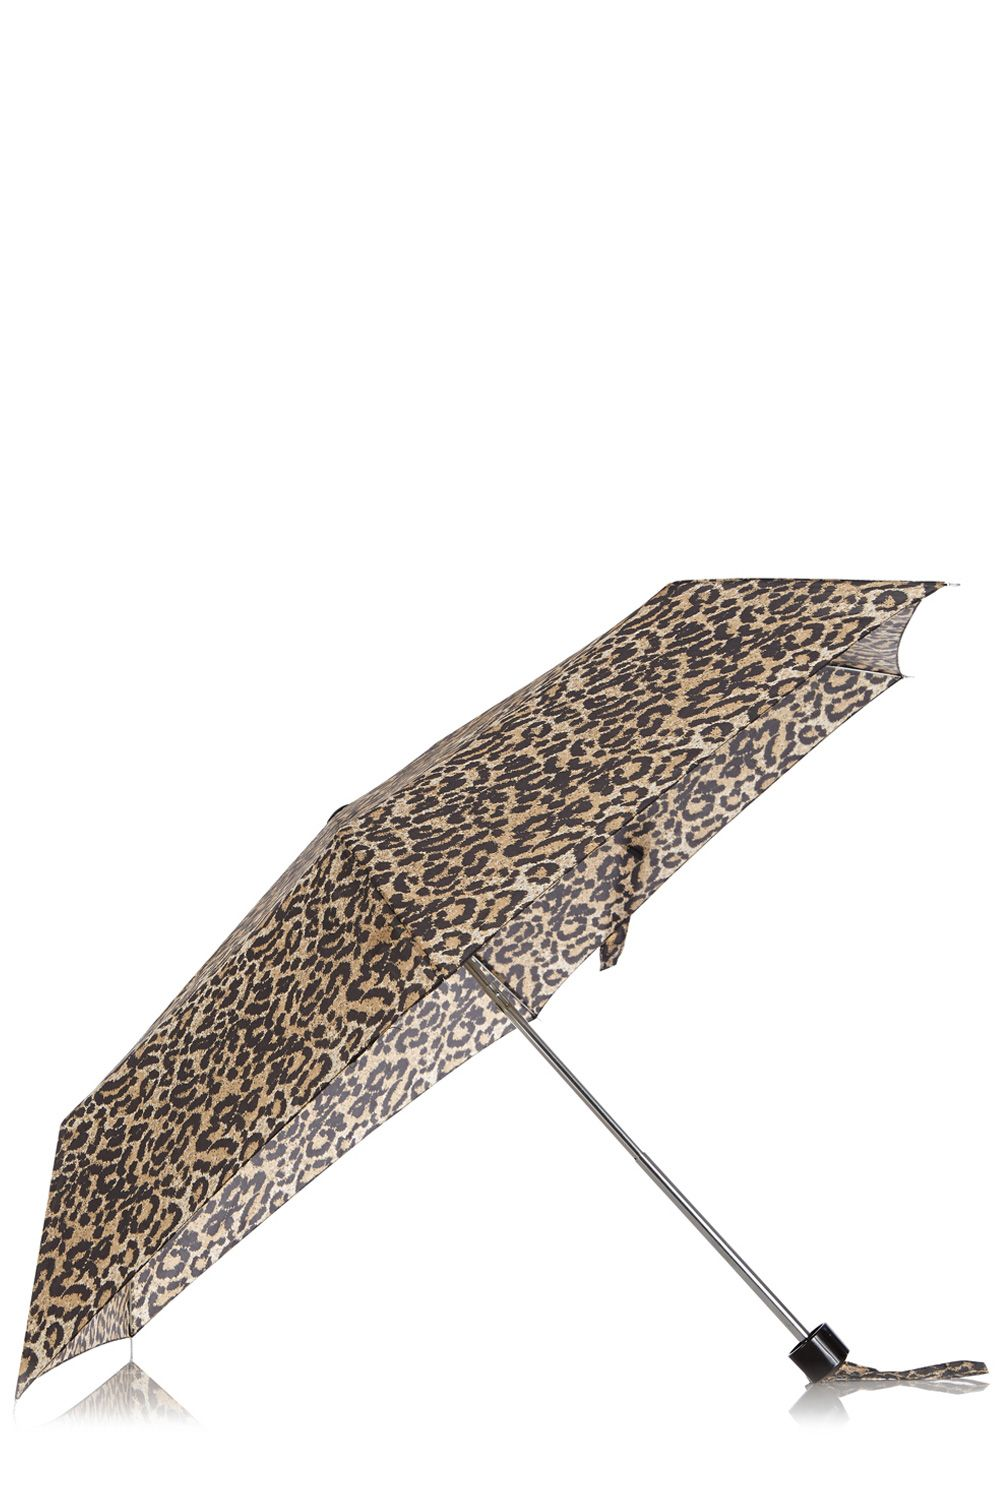 Baby leopard umbrella